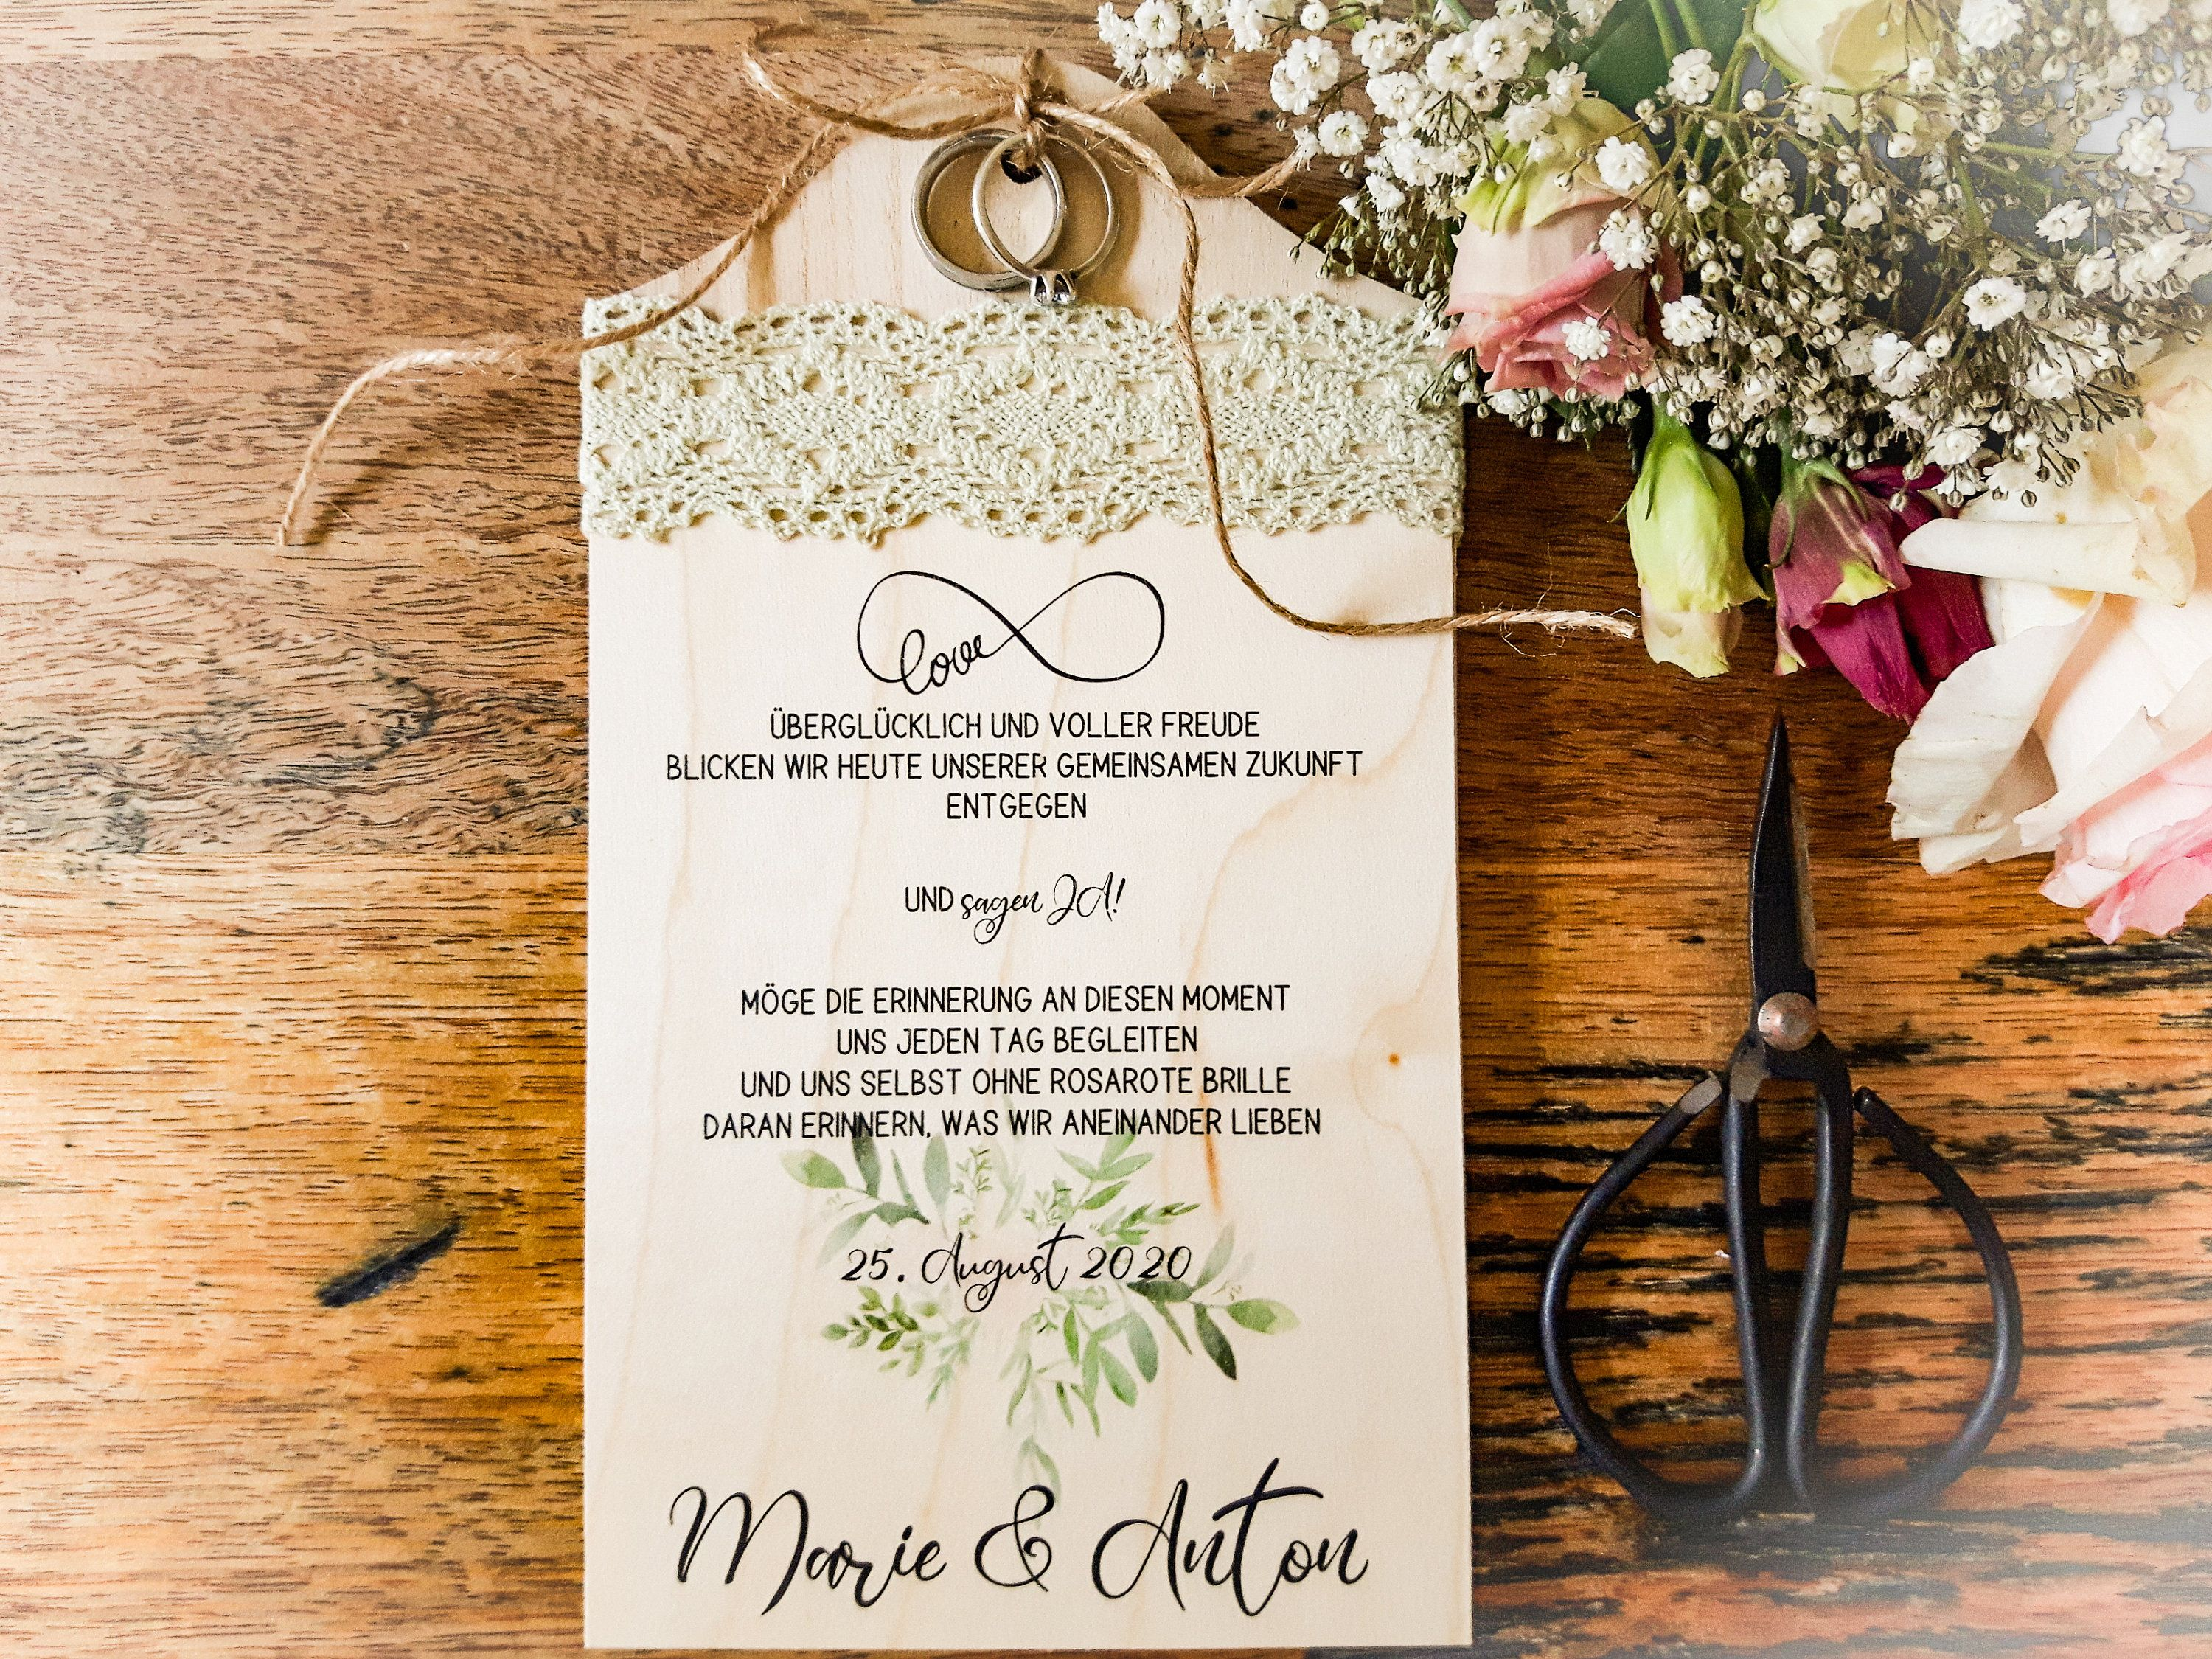 Ringscheibe Hochzeit Boho Vintage Ringschatulle Personalisiert Ringnest Ringbox Ringkissen Eheringe Ringschachtel Only You Wedding Book Cover